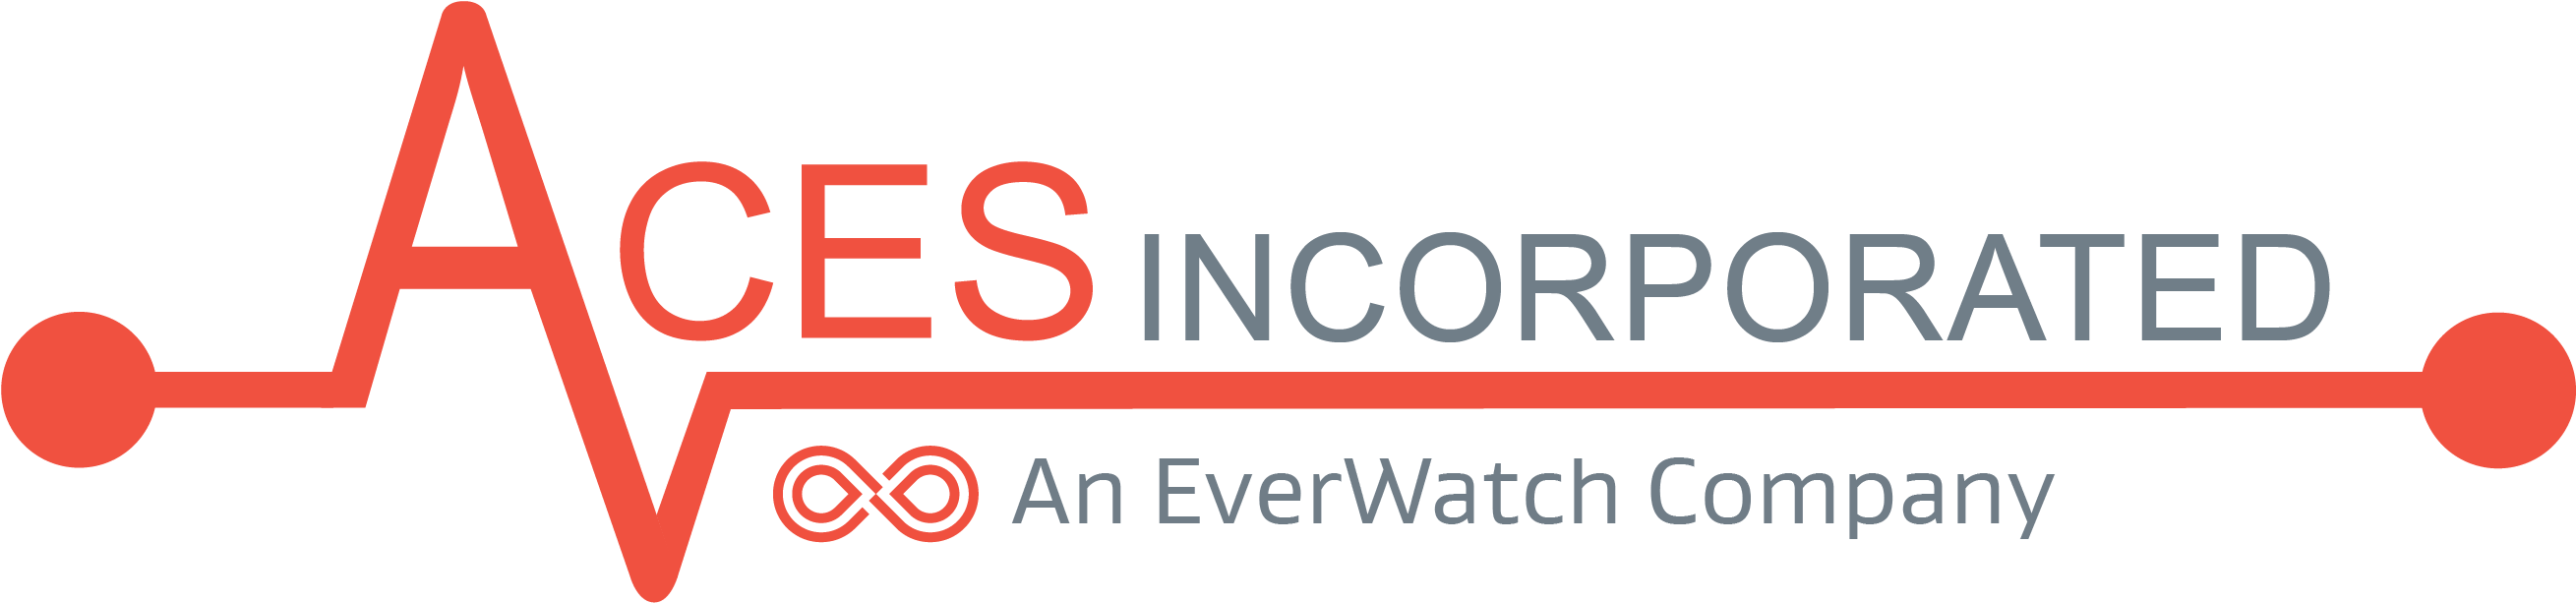 ACES Incorporated, an EverWatch Company Company Logo